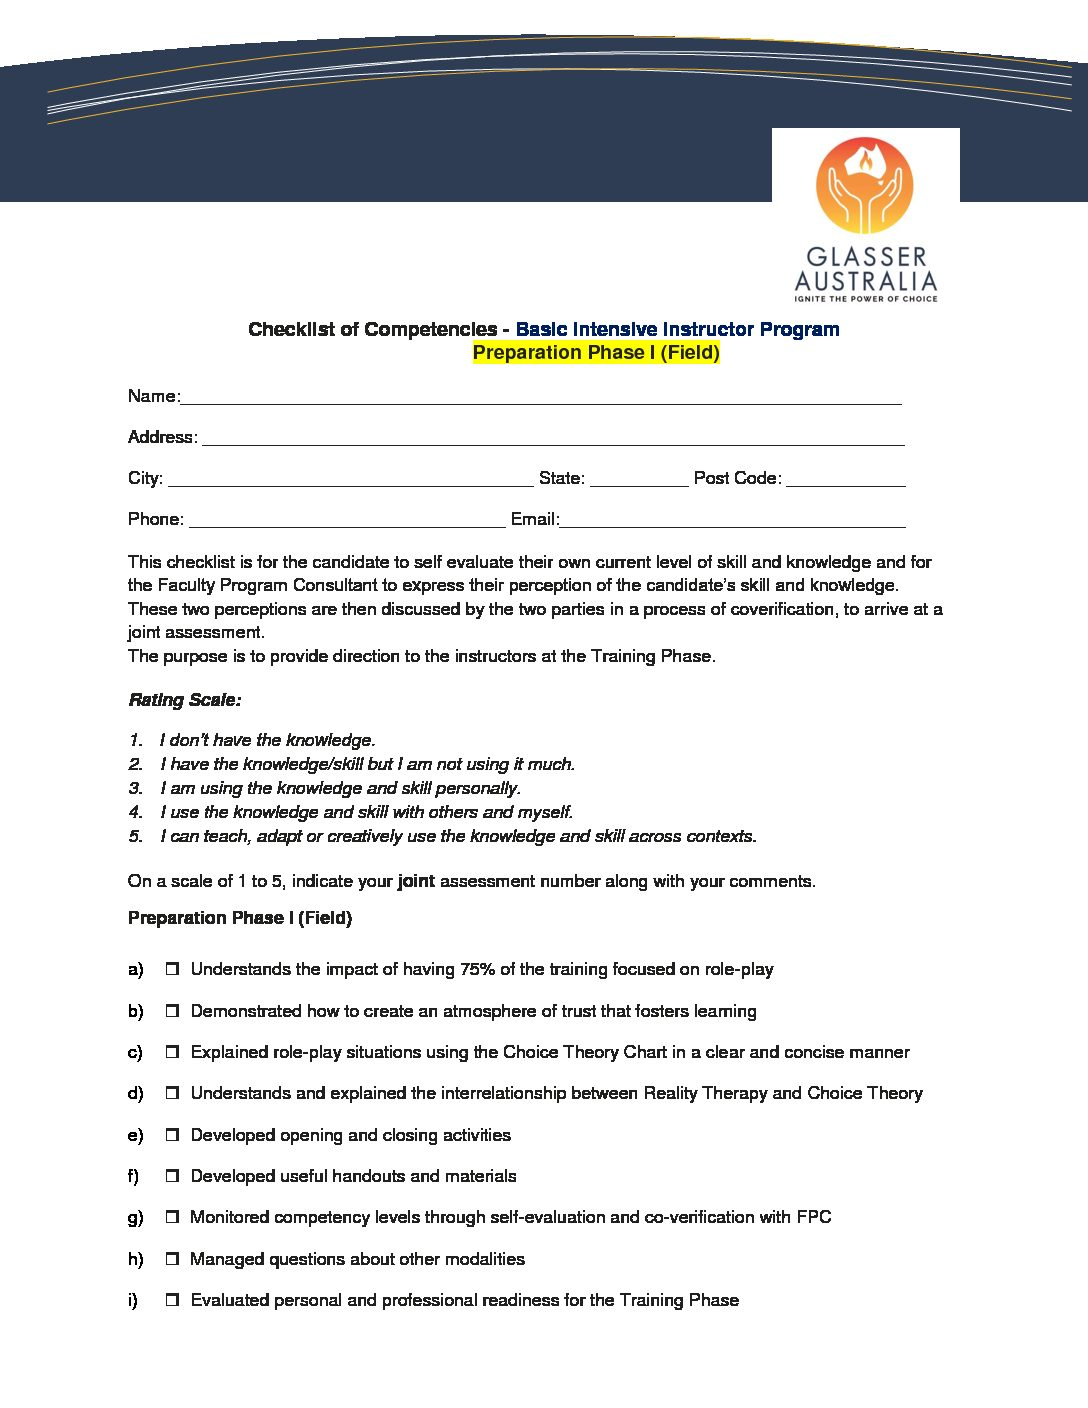 Checklist of Compt Basic Intensive Instructor Program Phase I (Field)